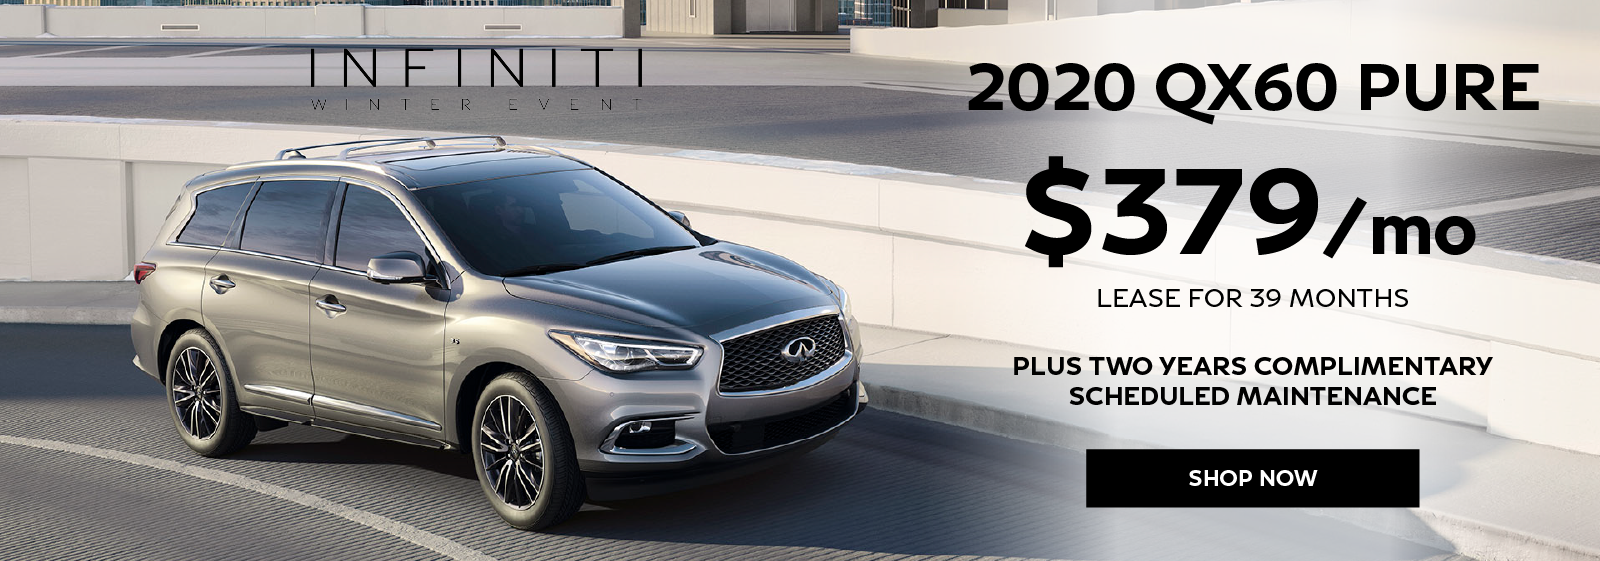 Well-qualified lessees can lease a new 2020 INFINITI QX650 PURE for $379 per month for 39 months plus get two years complimentary scheduled maintenance. Click to view inventory.